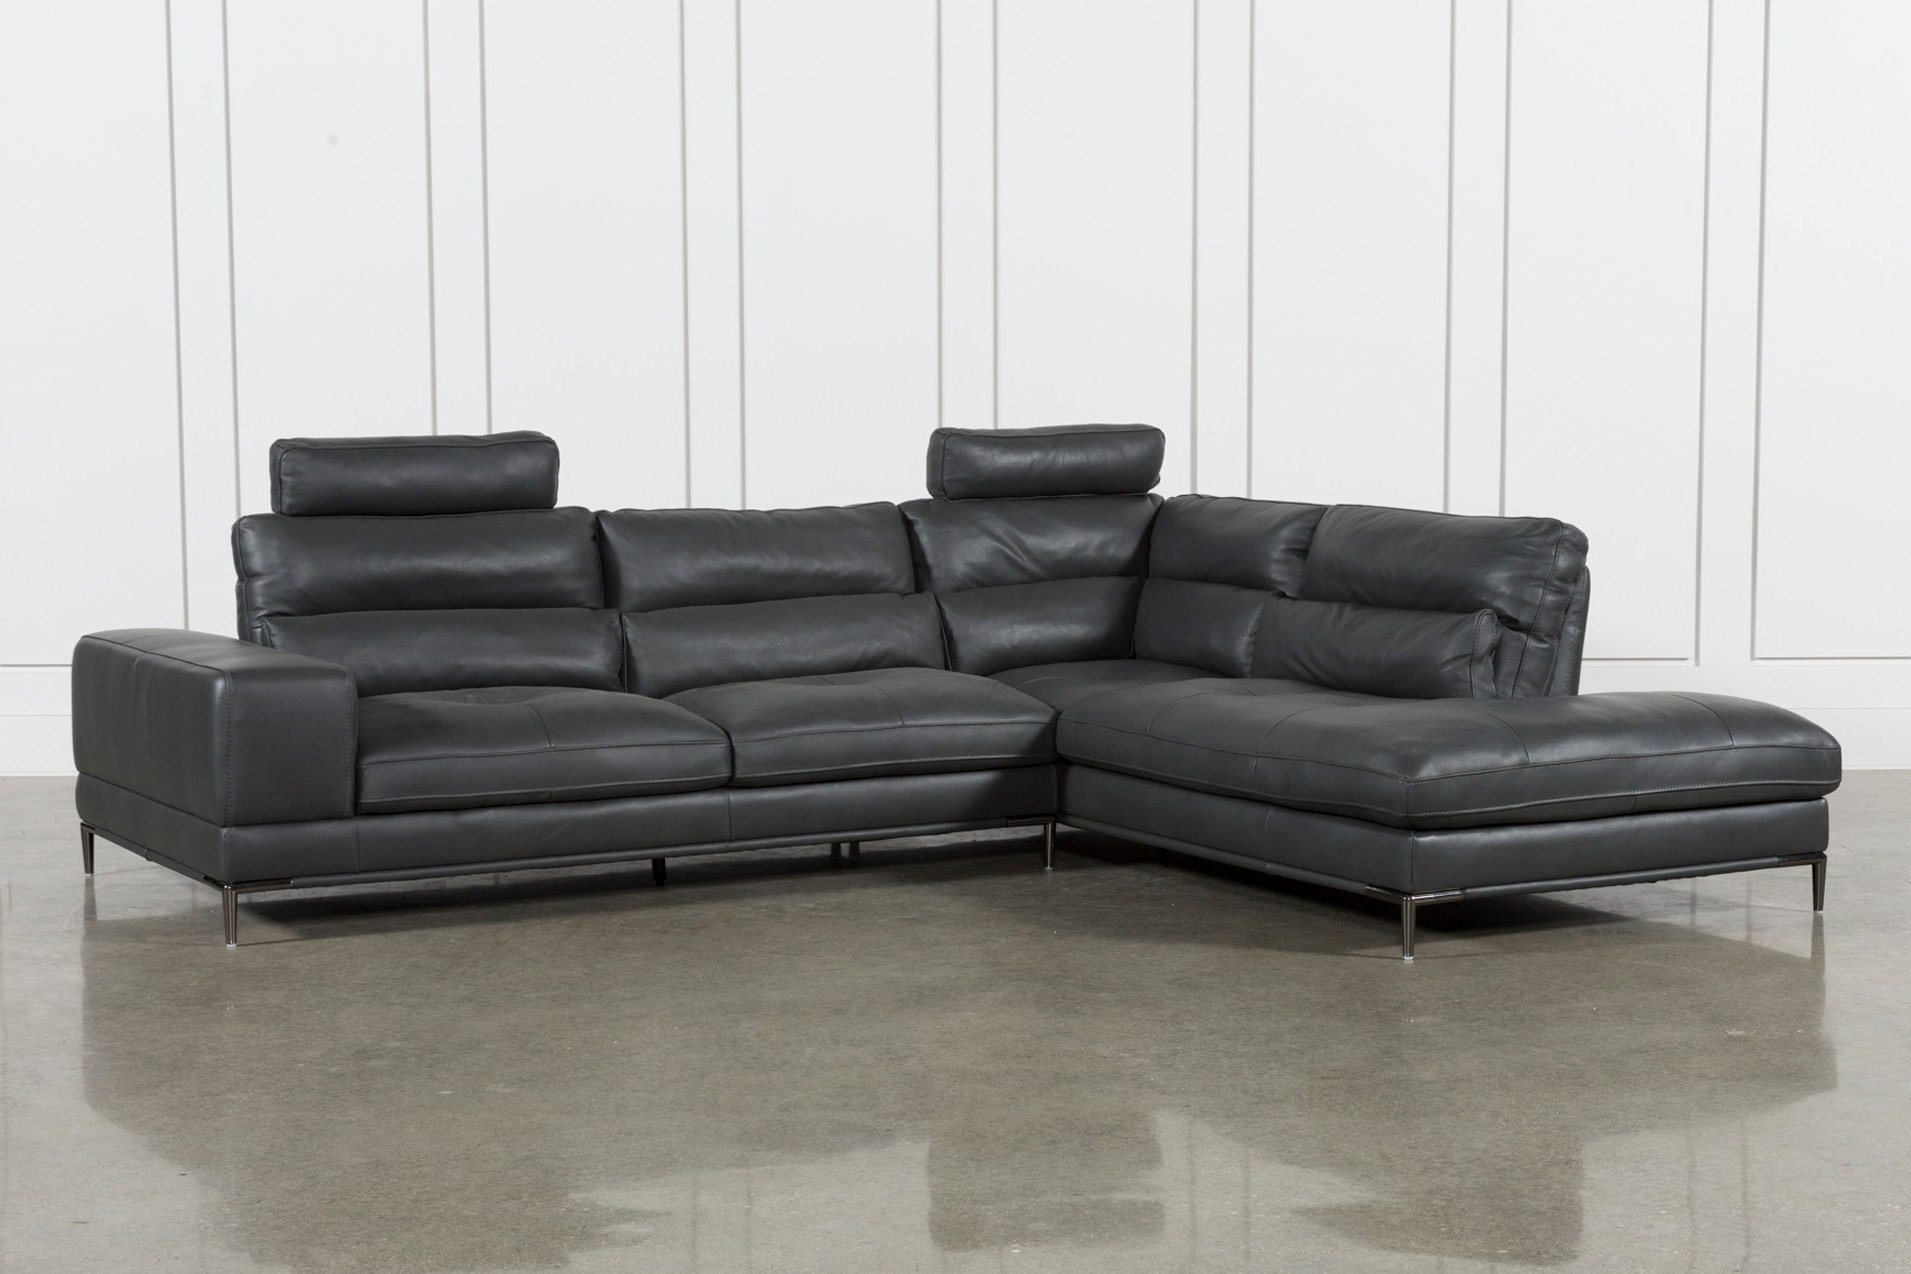 Tenny Dark Grey 2 Piece Raf Chaise Sectional W/2 Headrest | Living